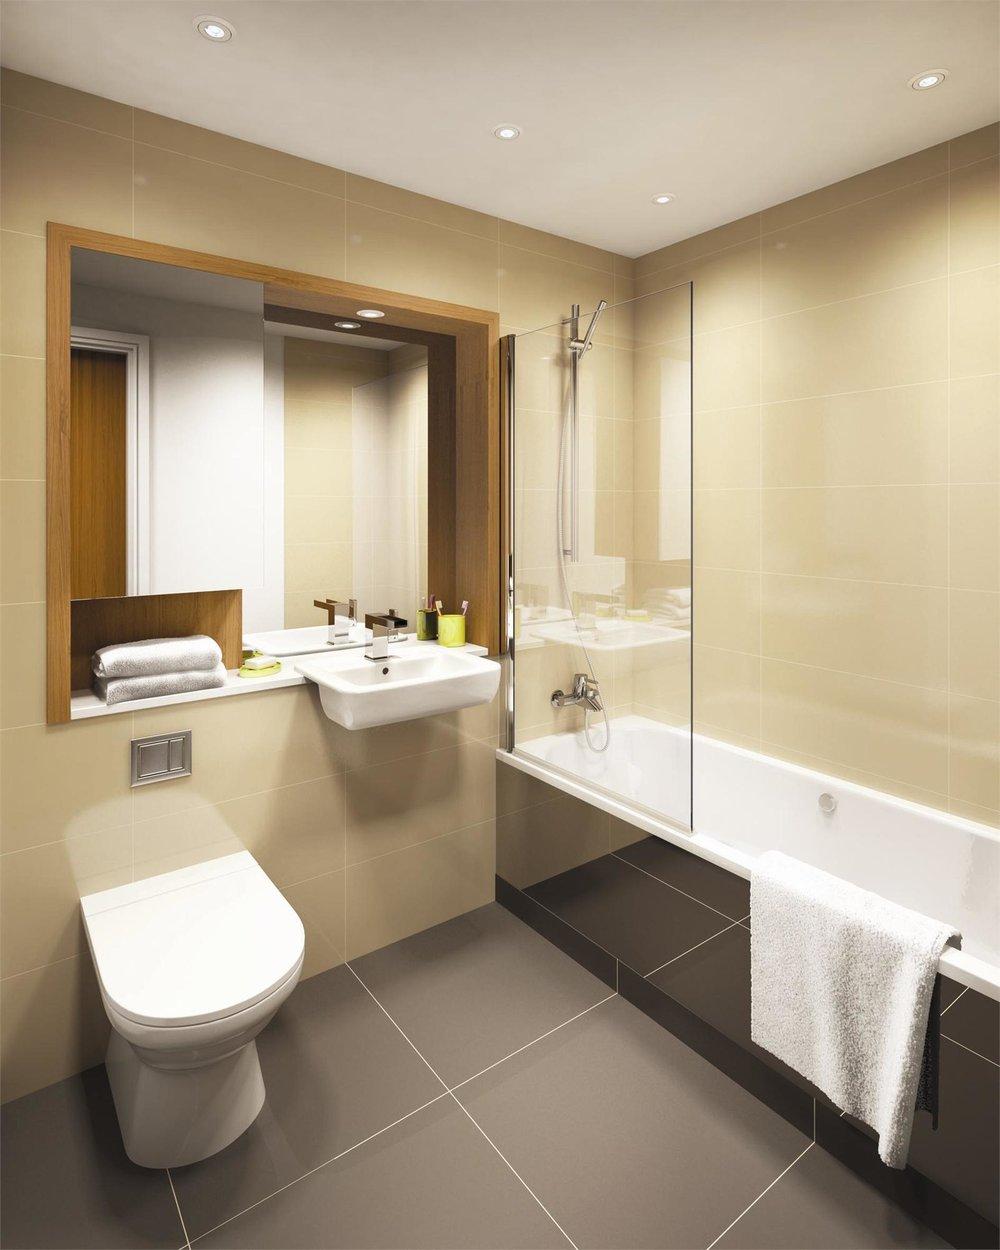 CGI of bathroom